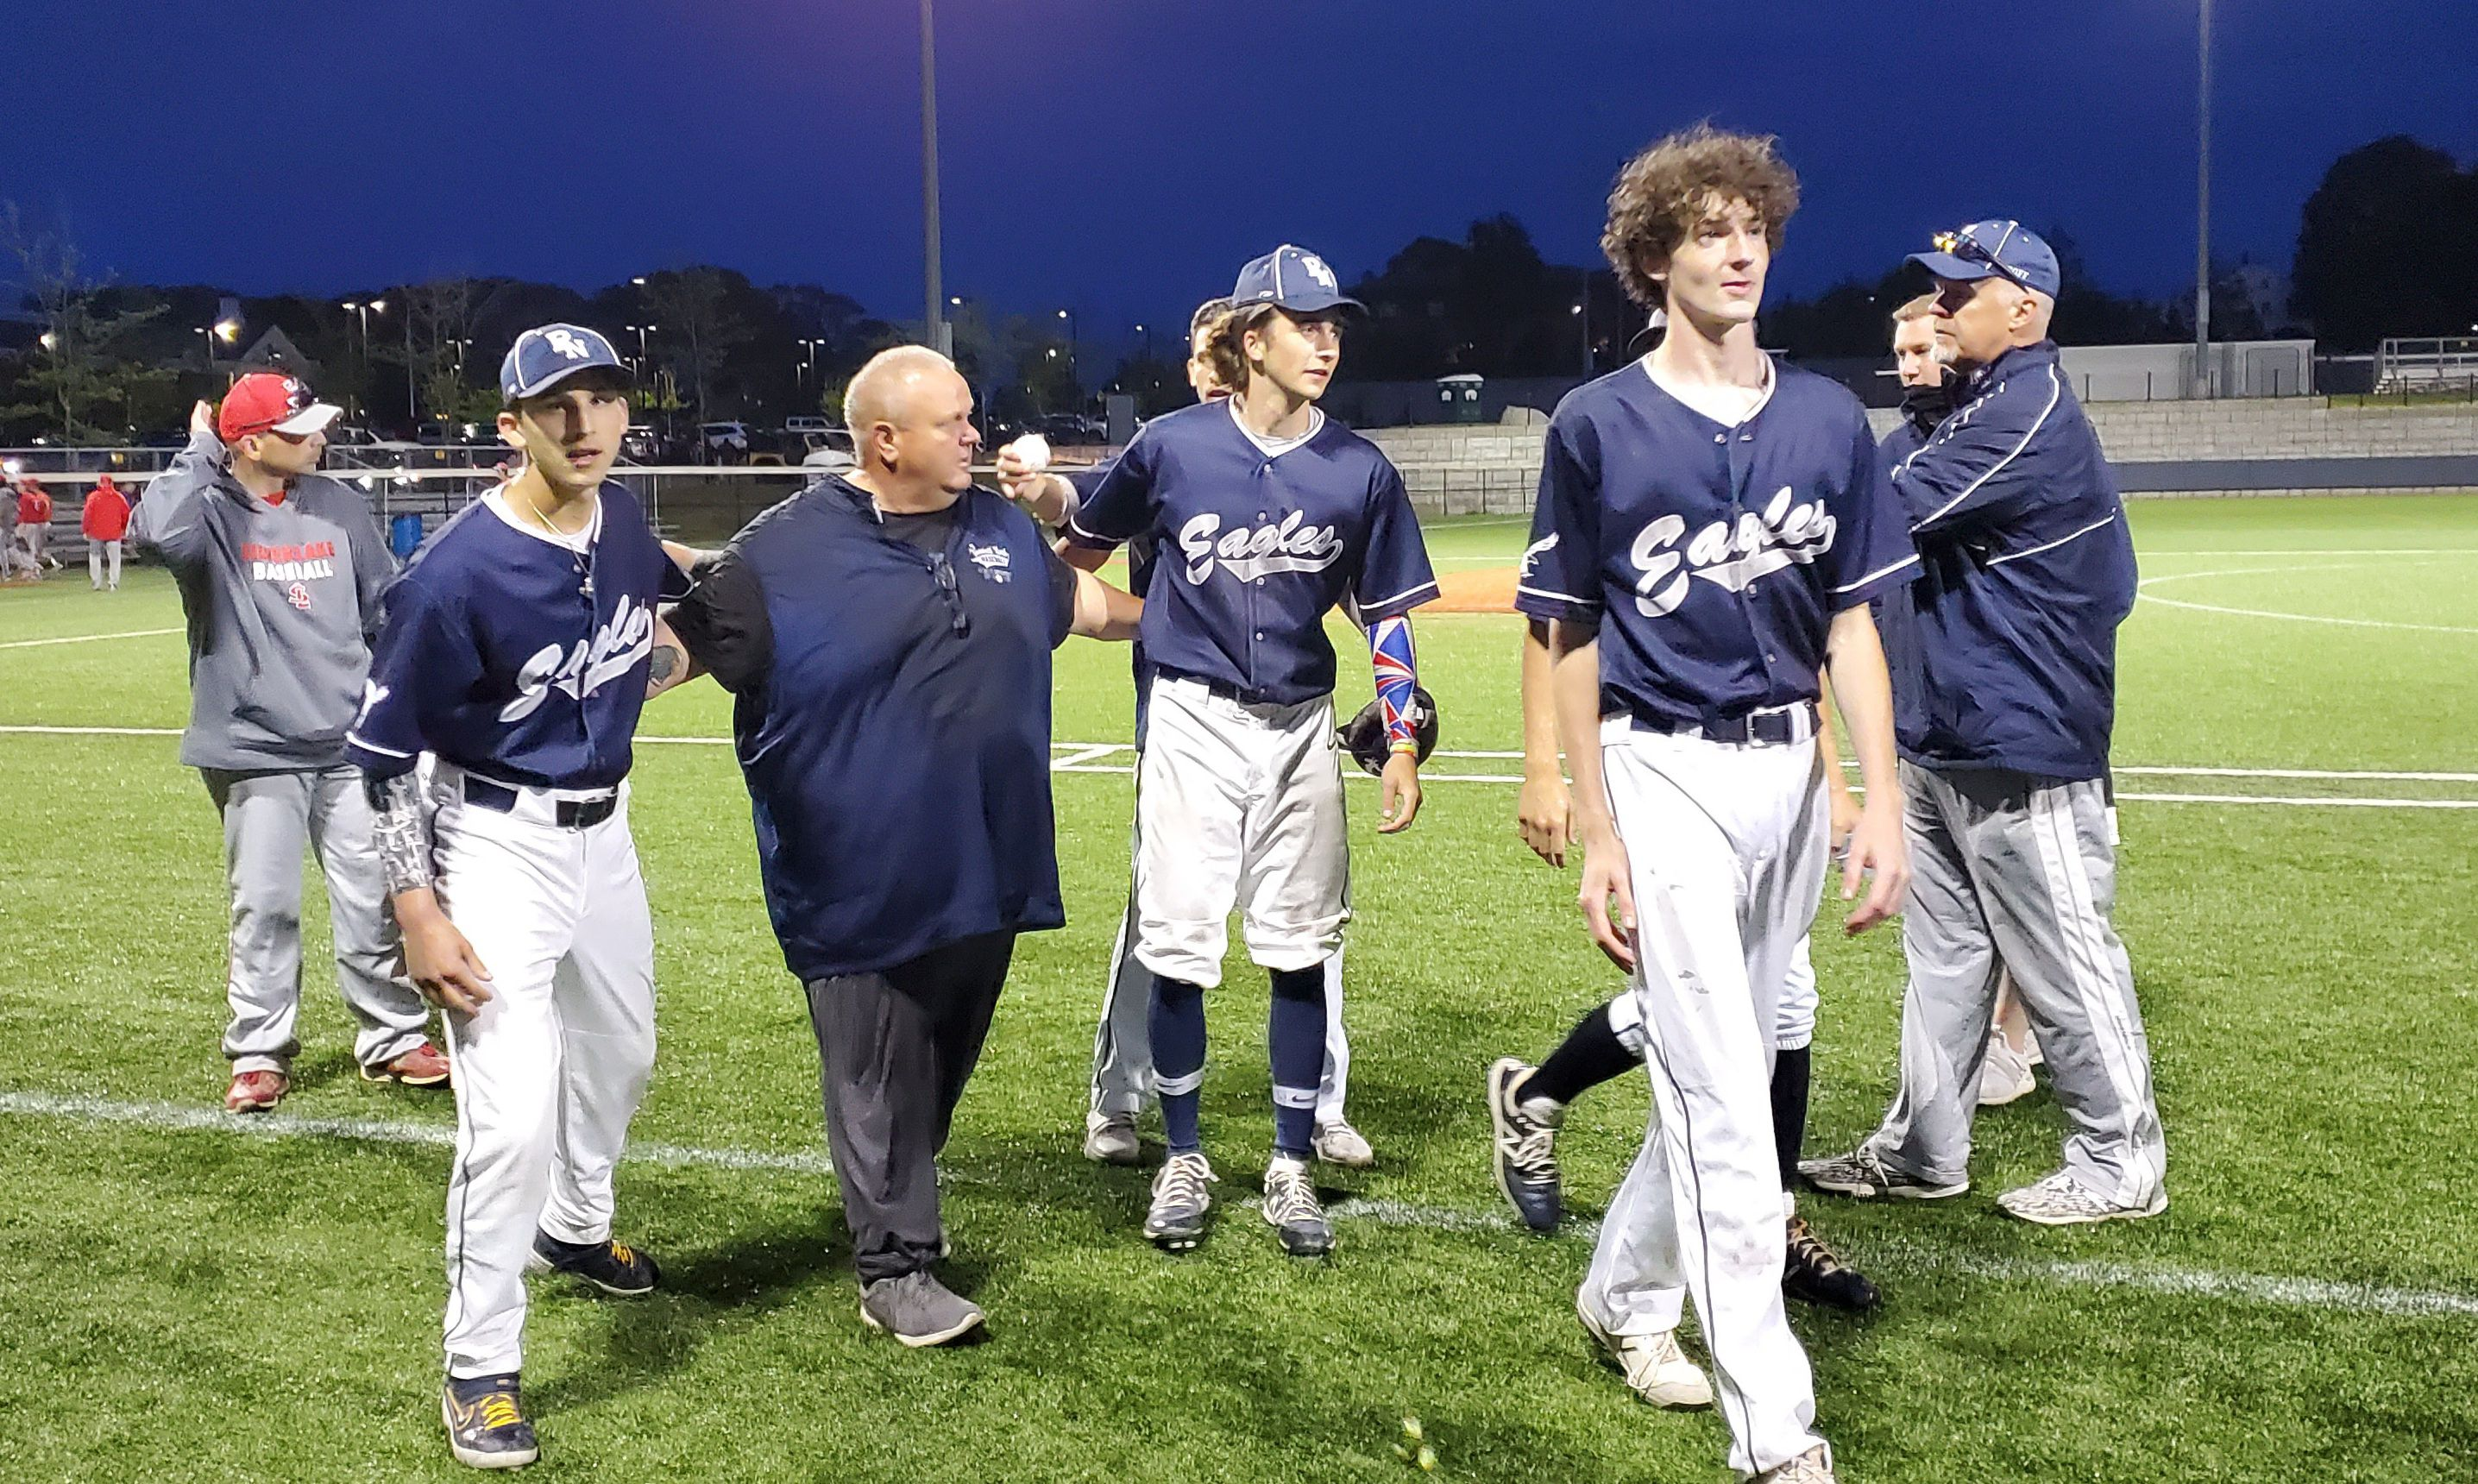 Plymouth North Baseball Delivers Coach Dwayne Follette His 400th Career Win The Boston Globe